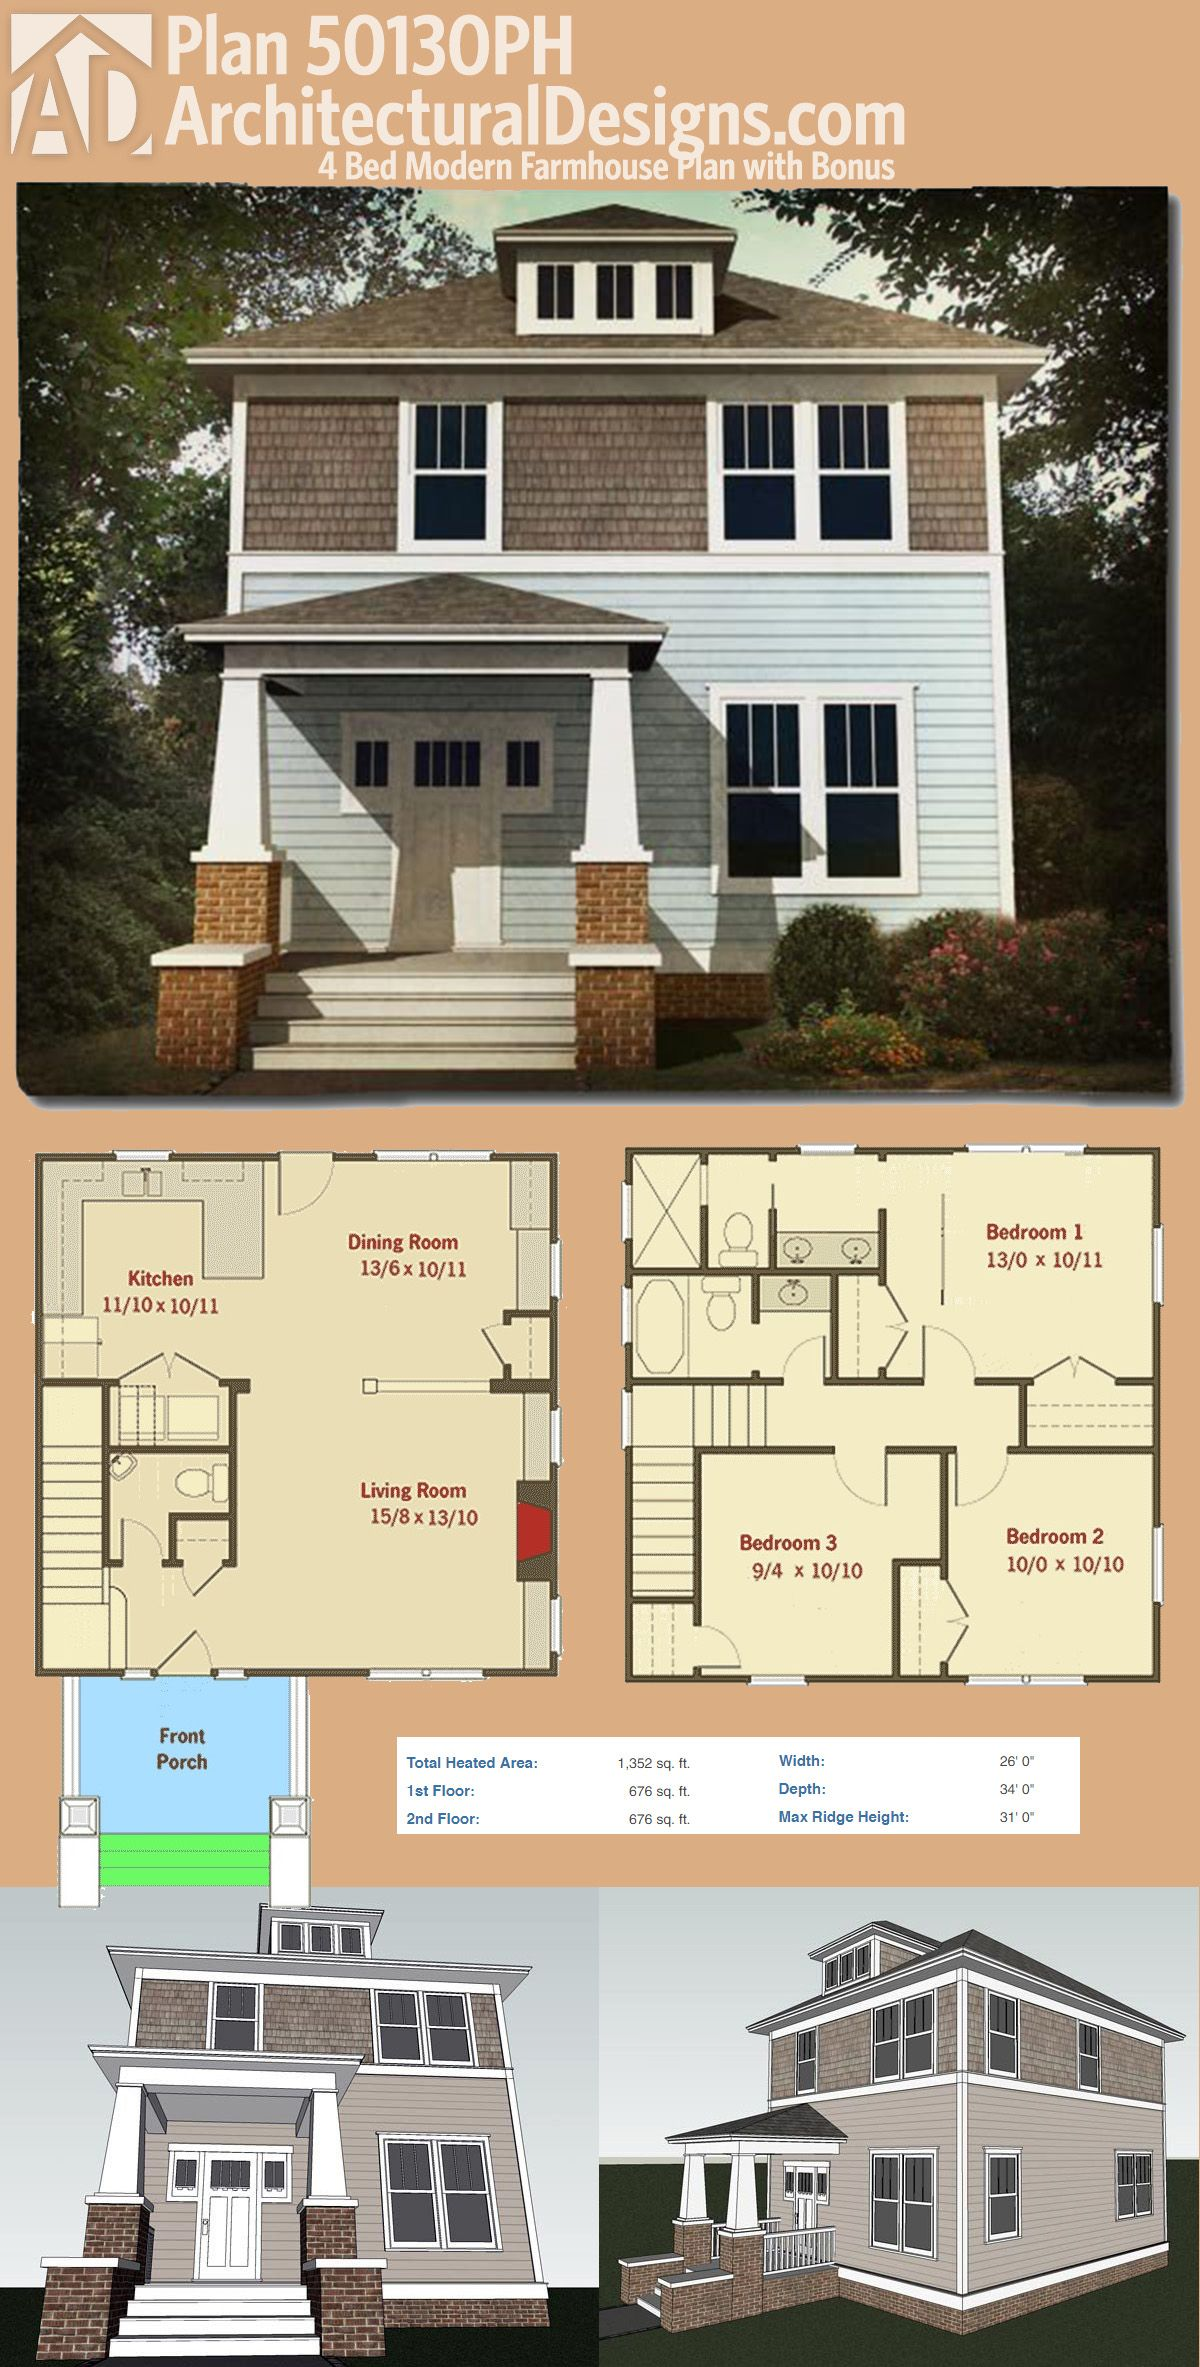 Plan 50130ph Classic Three Bed Four Square House Plan With